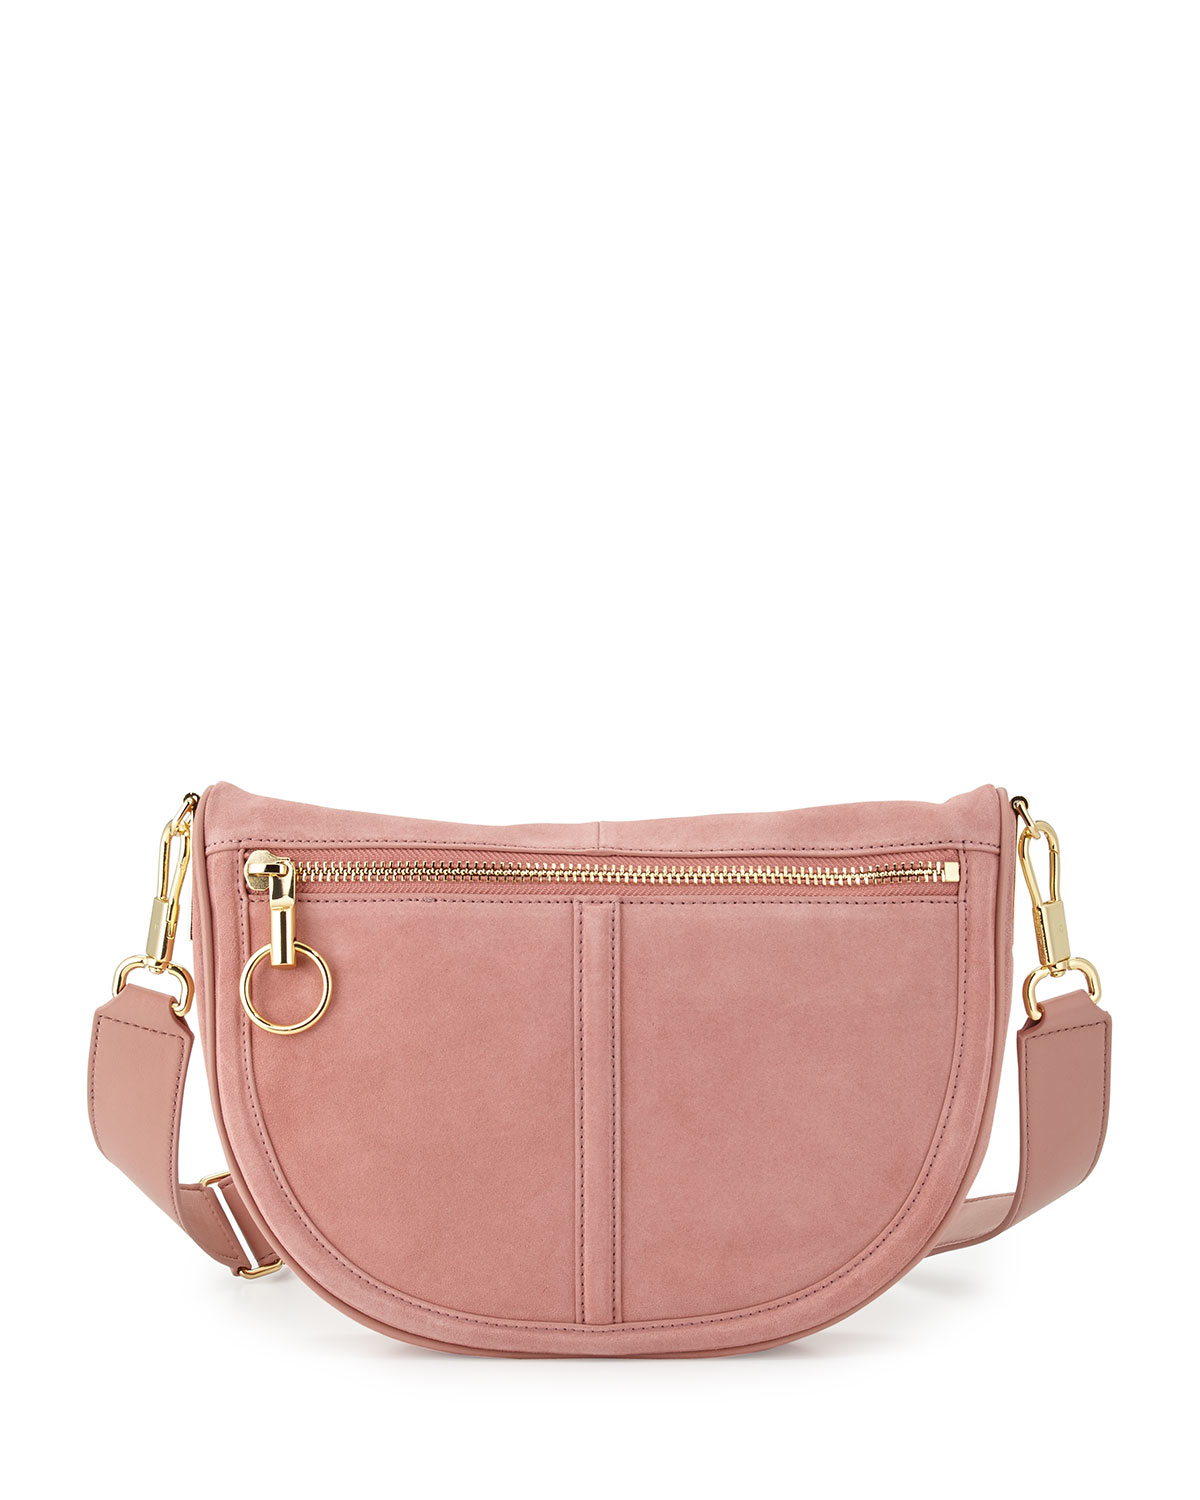 3ba21a7fe9 Elizabeth and James Scott Small Moon Suede Saddle Bag in Pink - Lyst